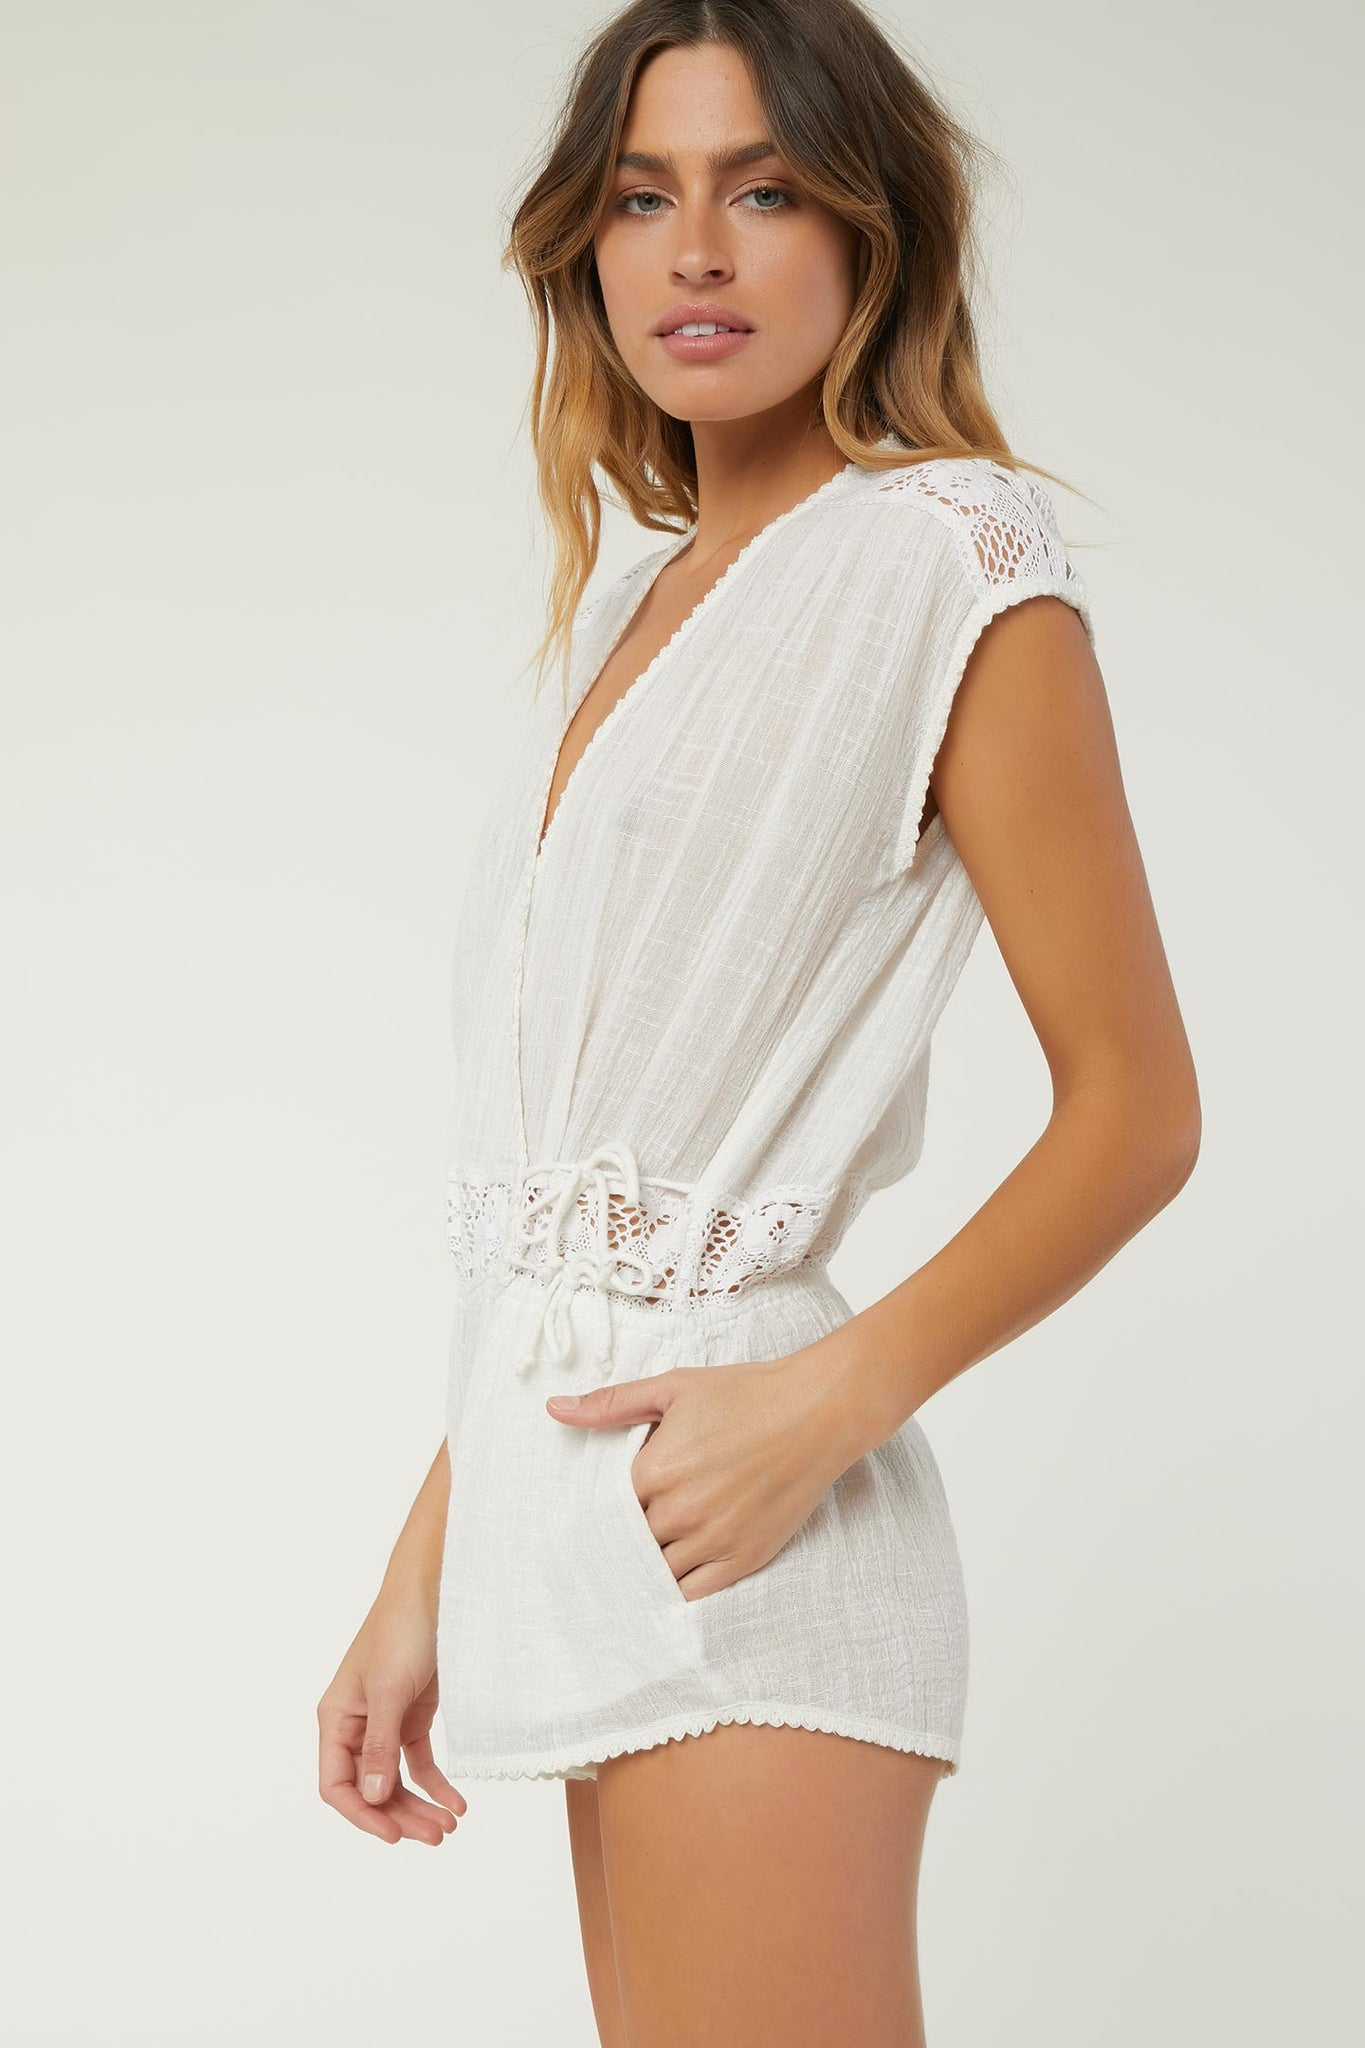 Saltwater Solids Cover-Up Romper | O'Neill Clothing USA